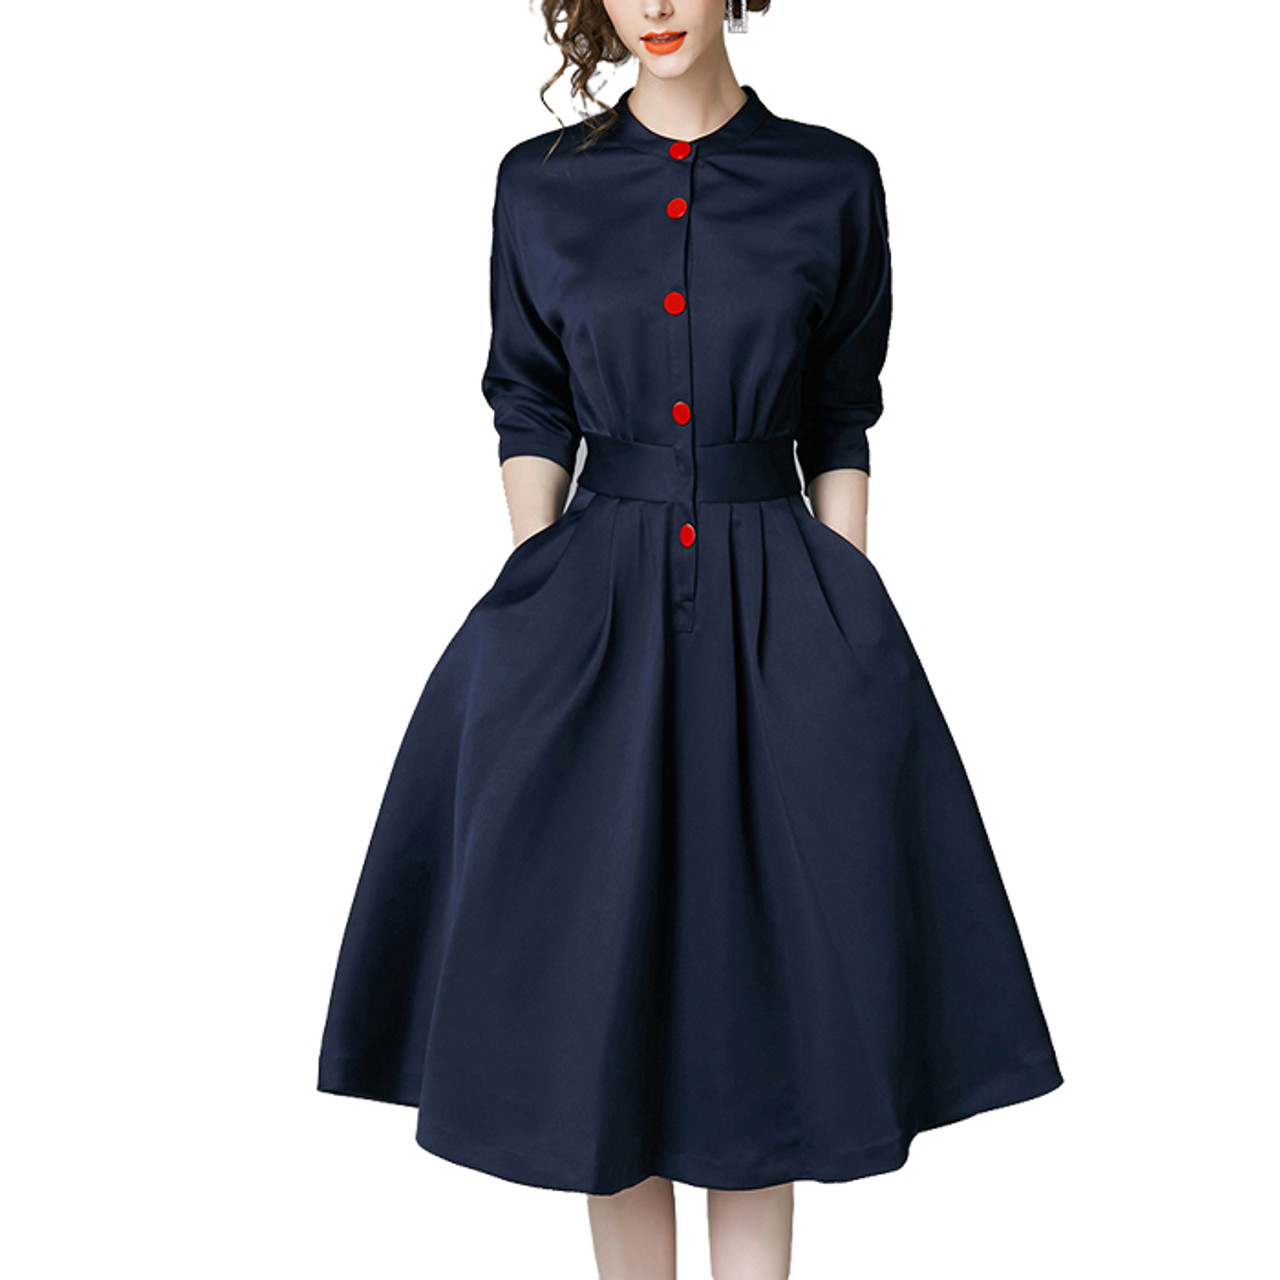 c808ff8835 New Spring Autumn Vintage Dresses Women Slim 3/4 Sleeve A Line Office Wear  Dress Elegant Laides Ol Work Business Dresses